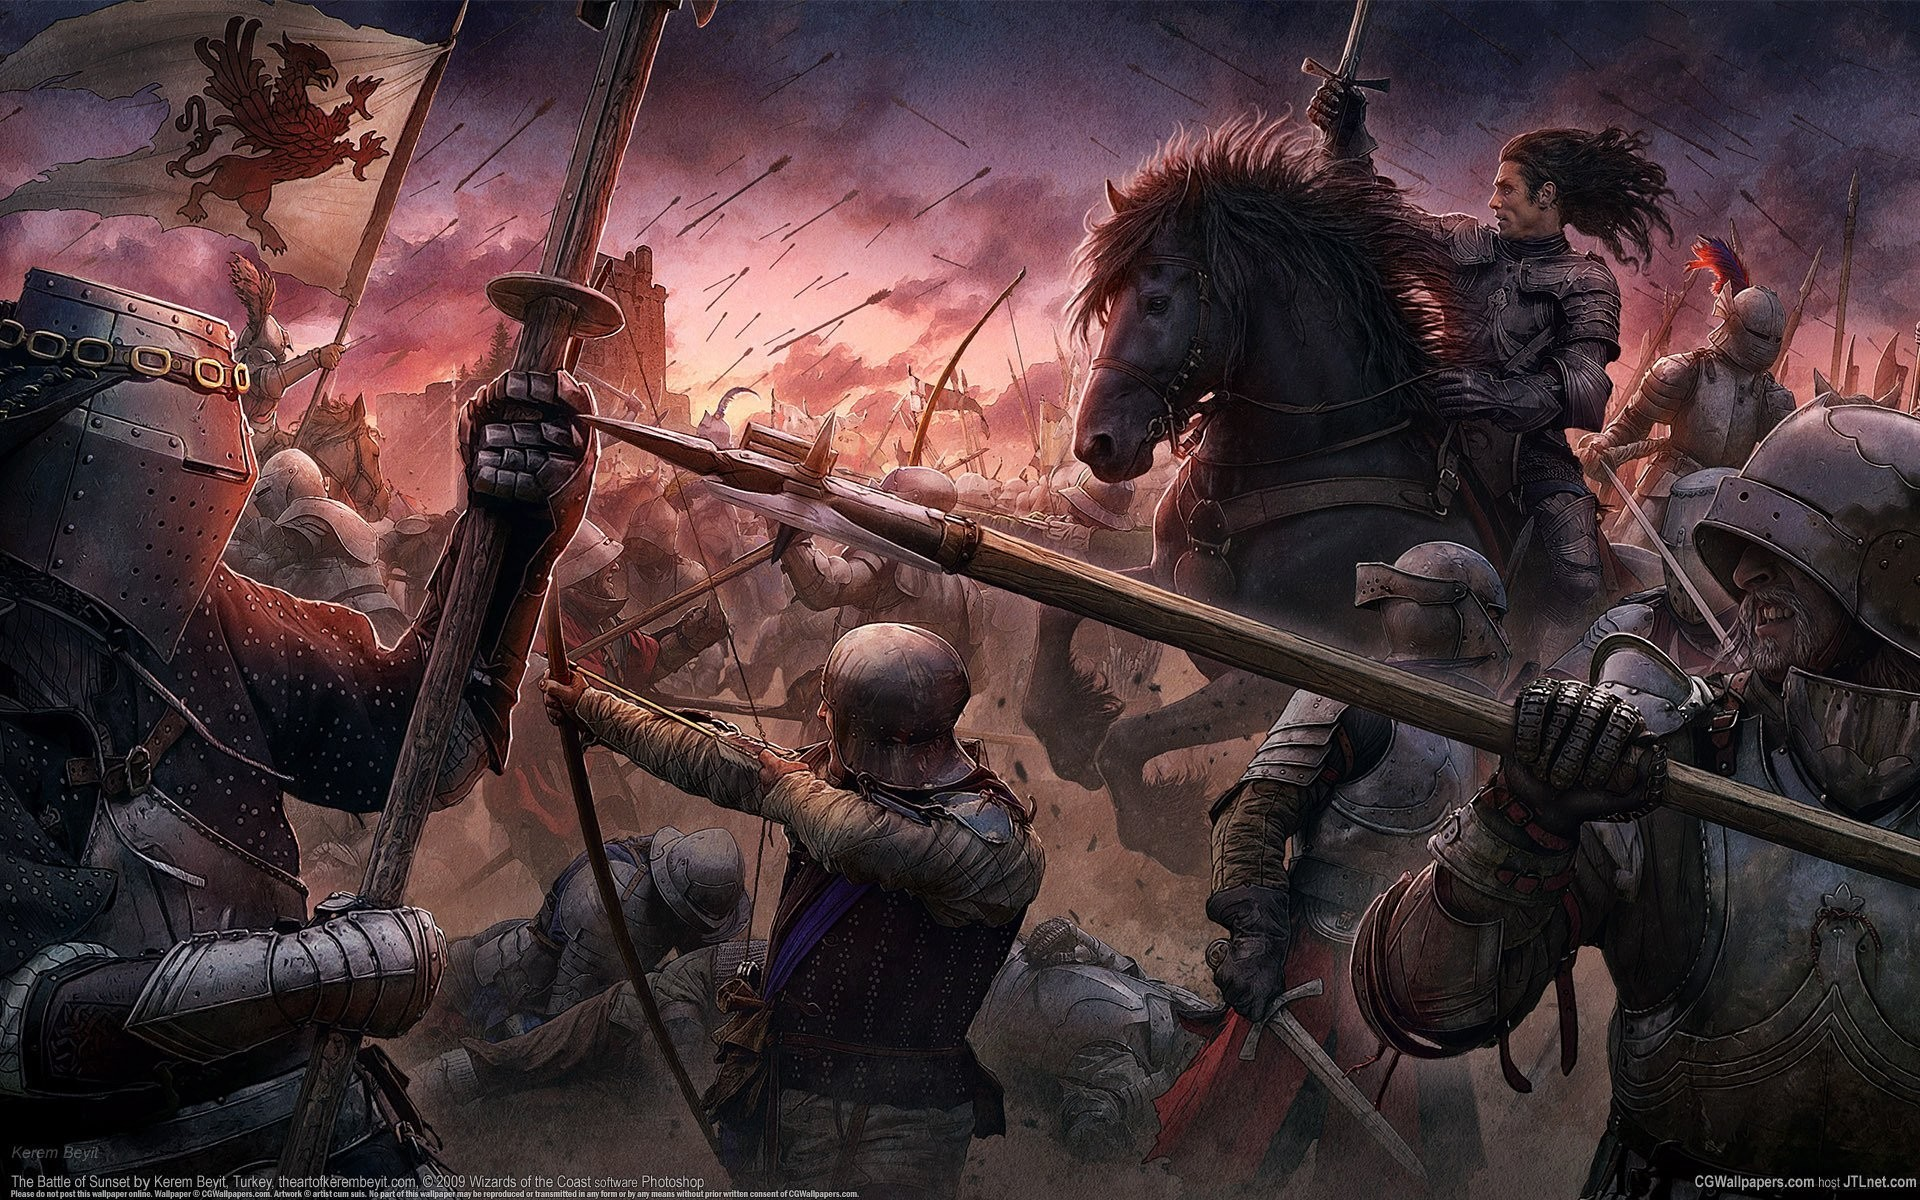 1920x1200 cg wallpapers kerem beyit the battle of sunset medieval style the middle  ages castle knights warriors